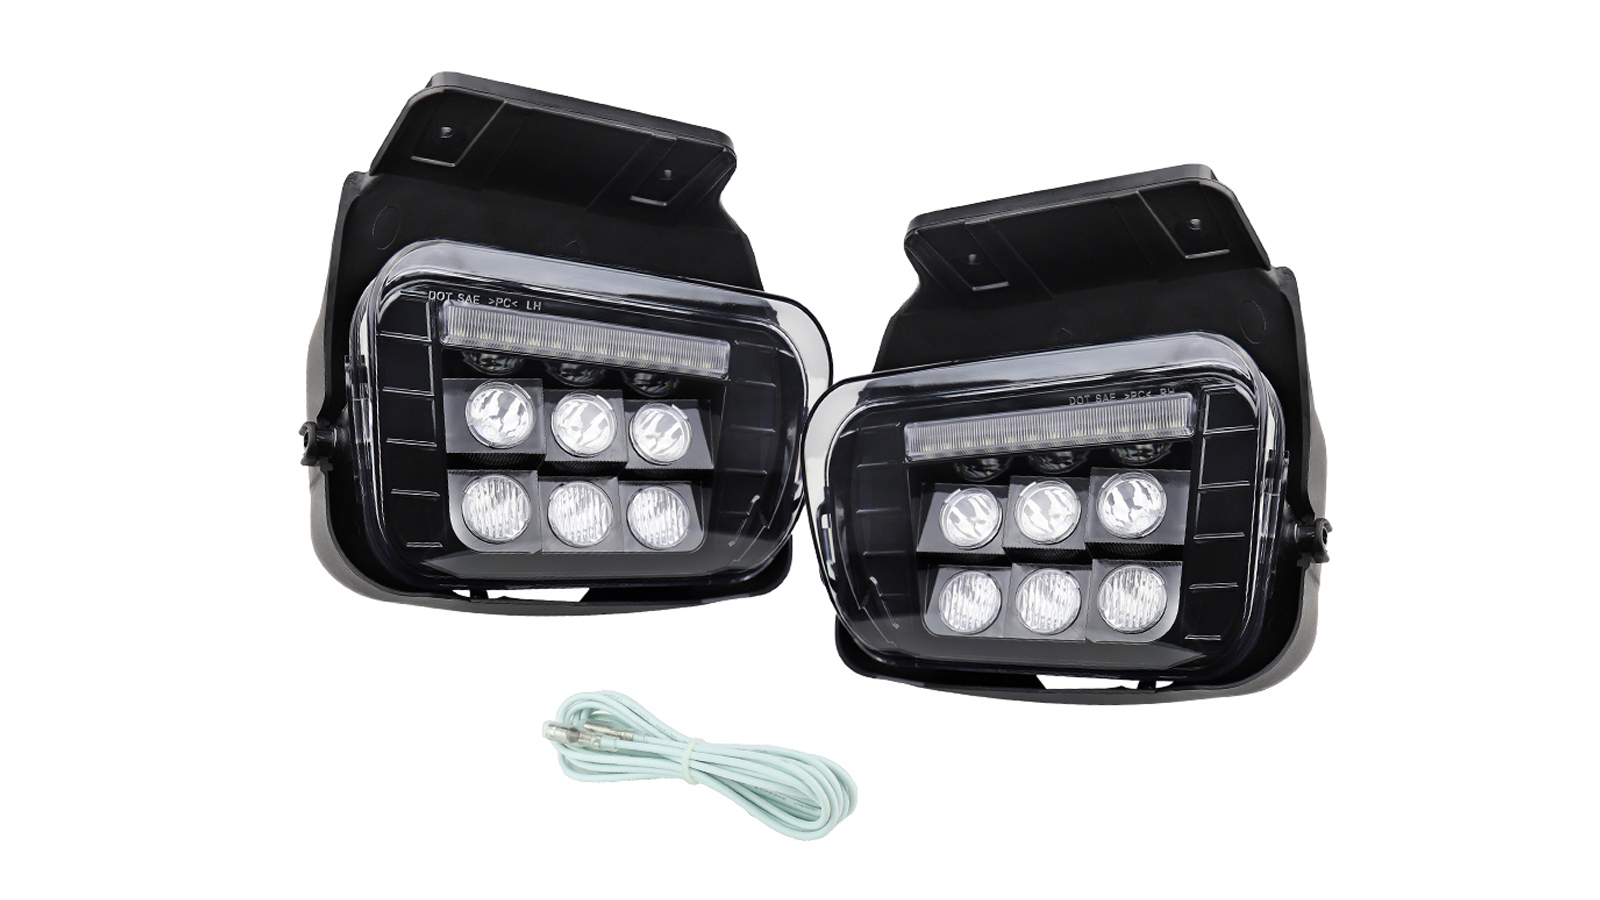 Pair For 2003-2006 Chevy Silverado/Avalanche LED Front Bumper Fog Light Lamp W/DRL